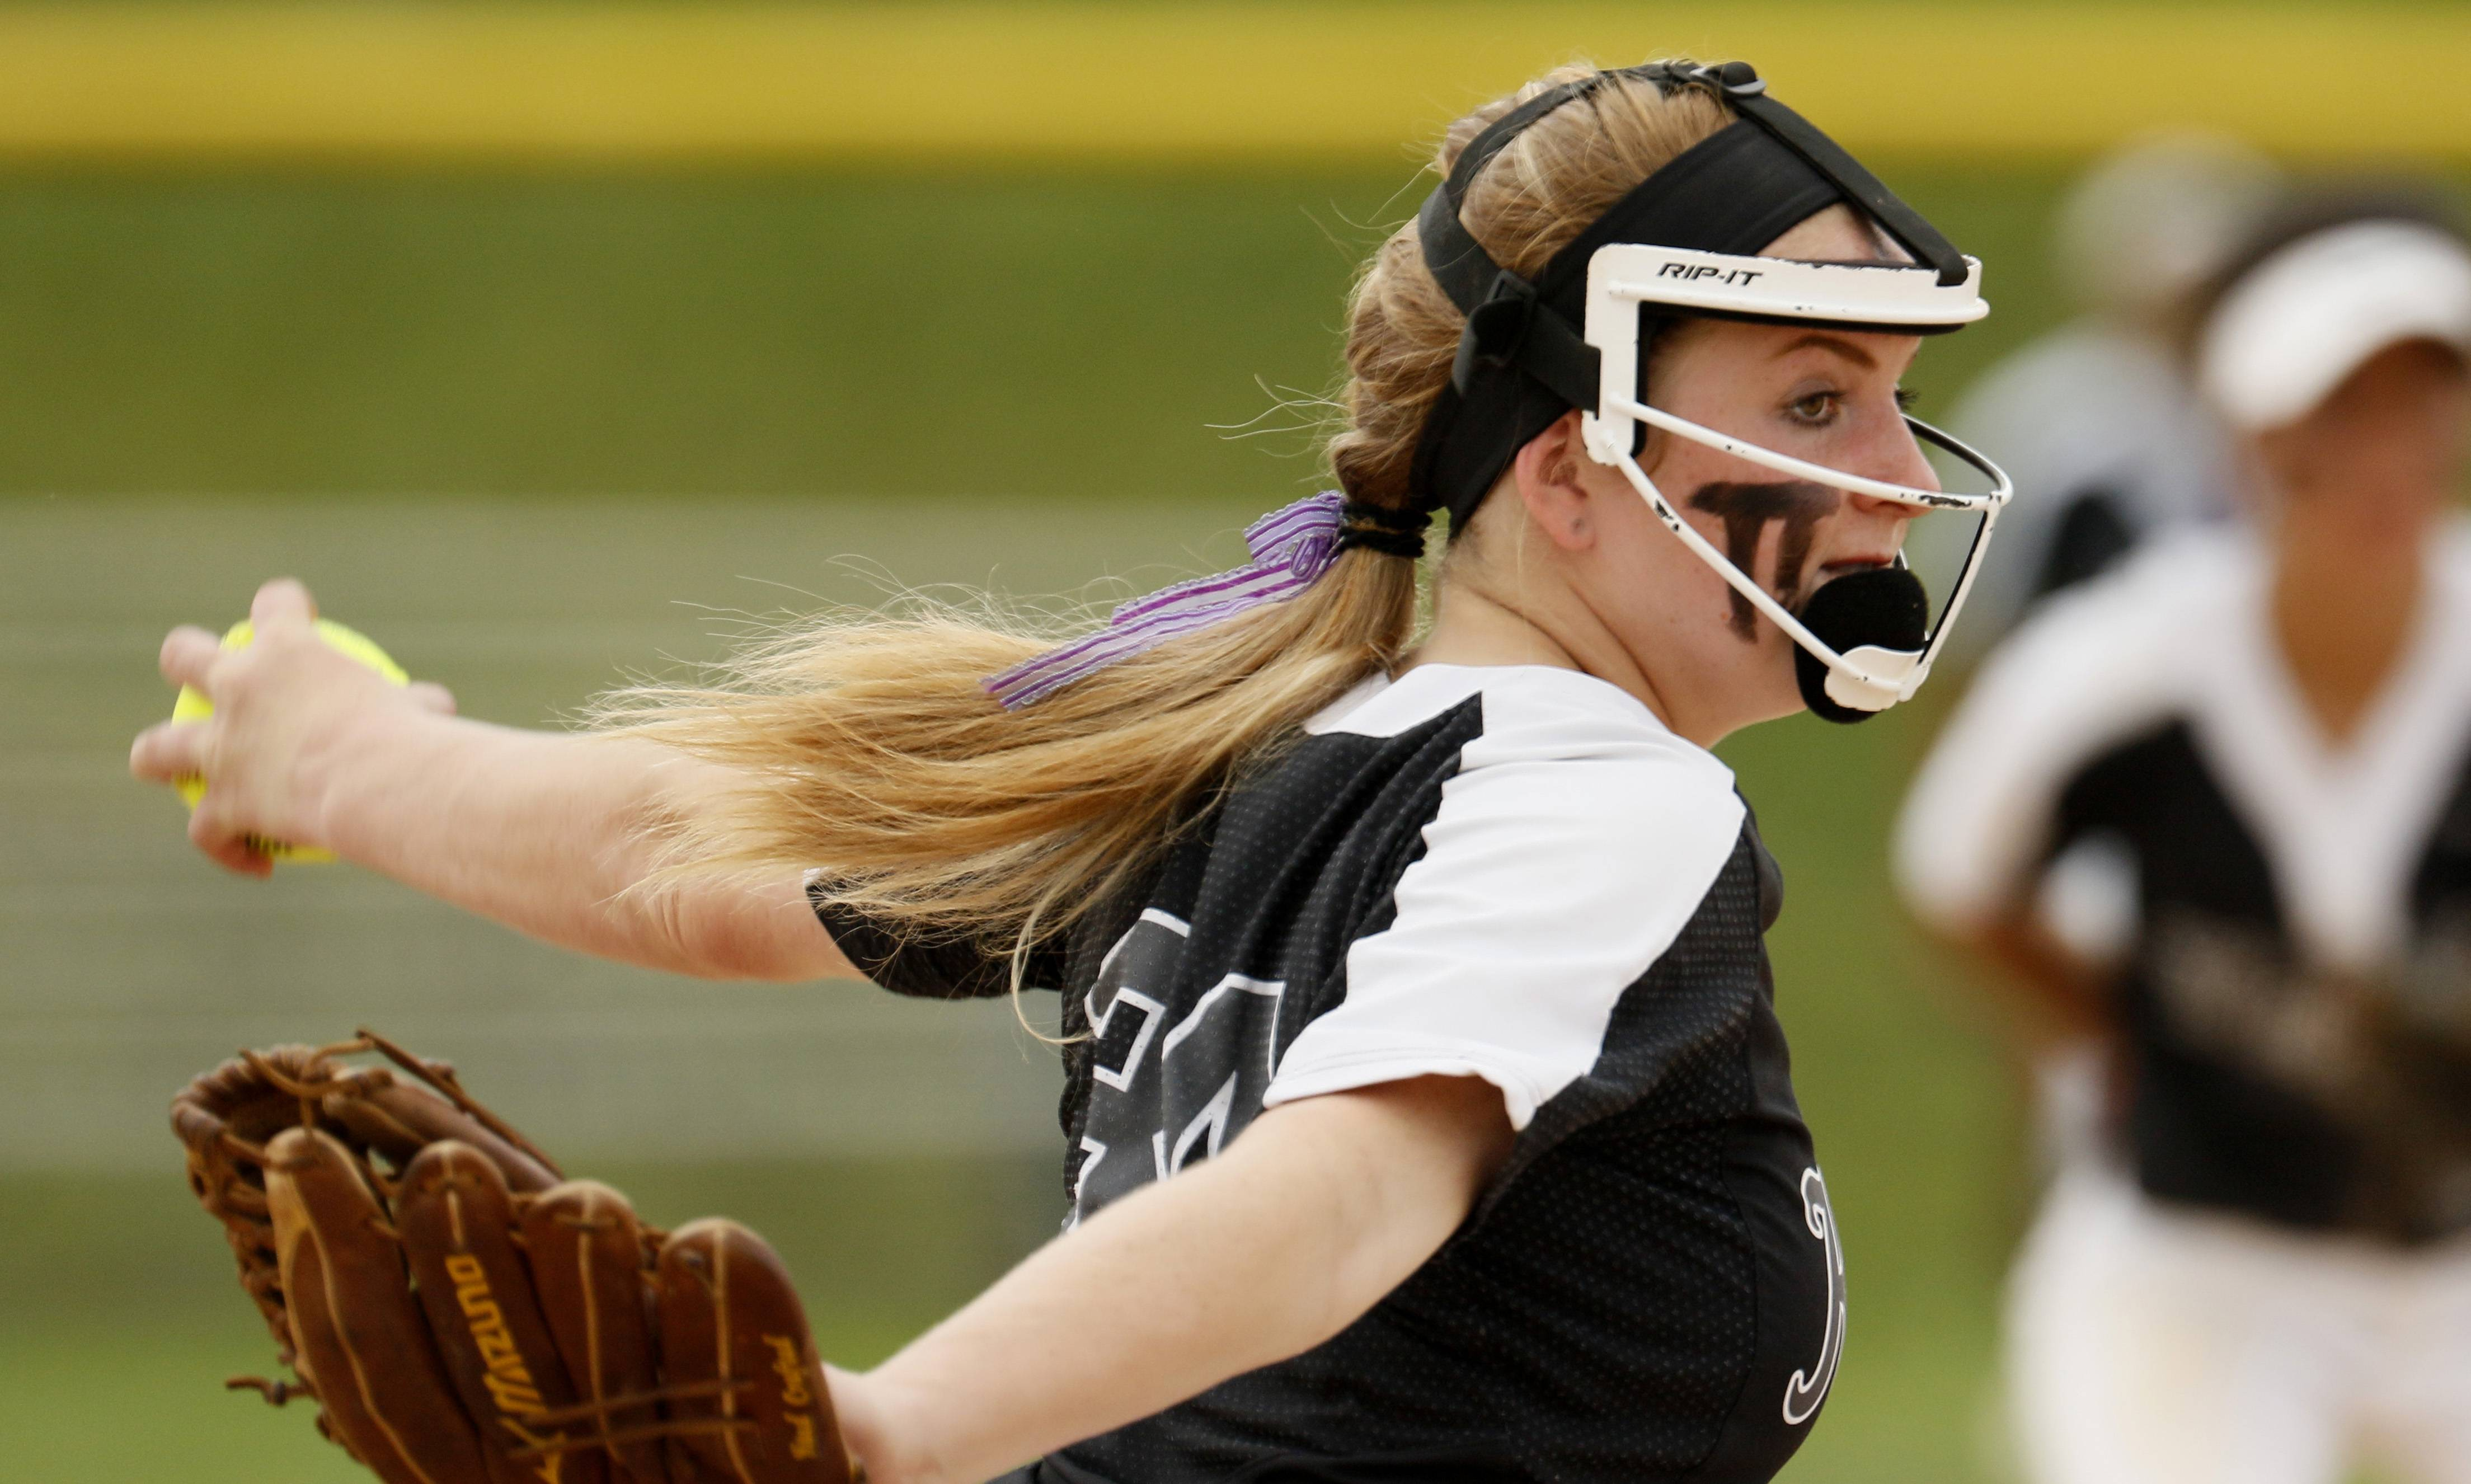 Kaneland's Emillee Erickson delivers a pitch against Montini Catholic during the IHSA Class 3A state softball championship.